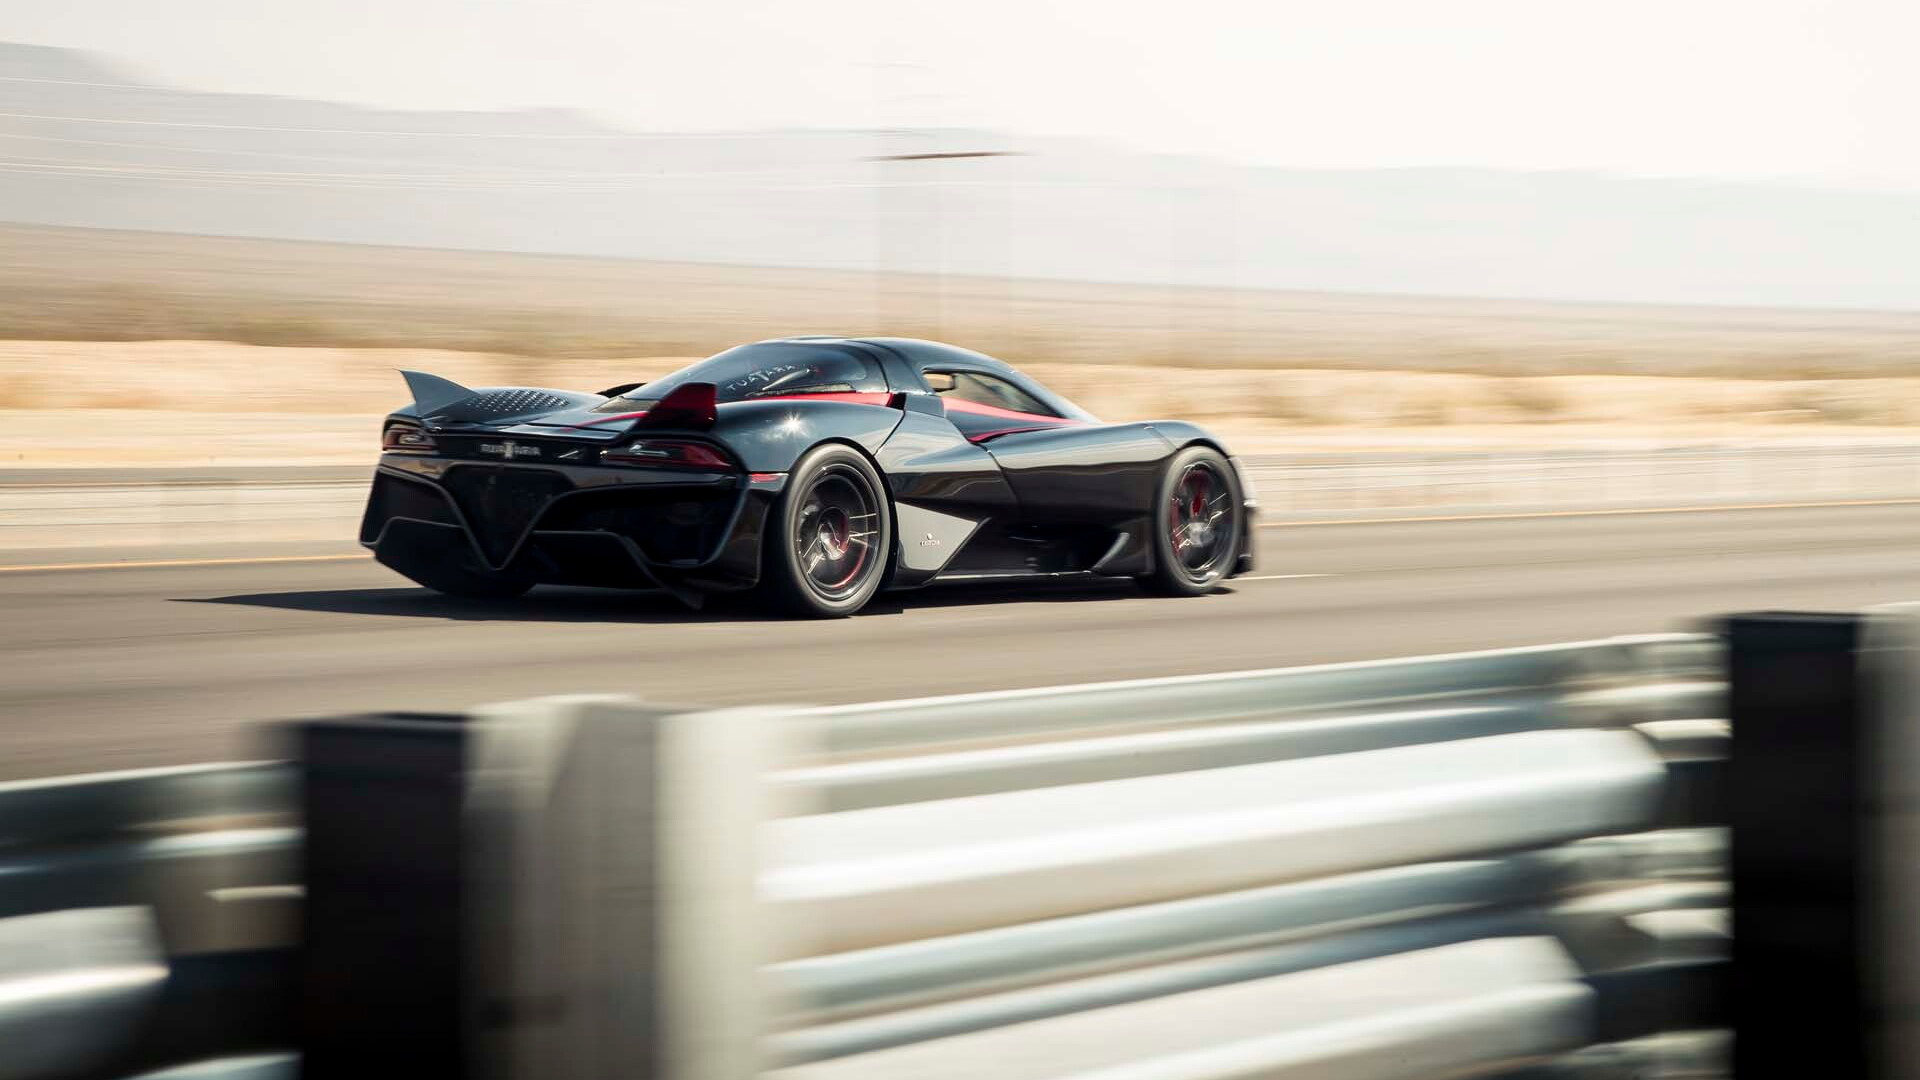 American SSC Tuatara supercar sets 316 miles per hour  speed record on Nevada highway